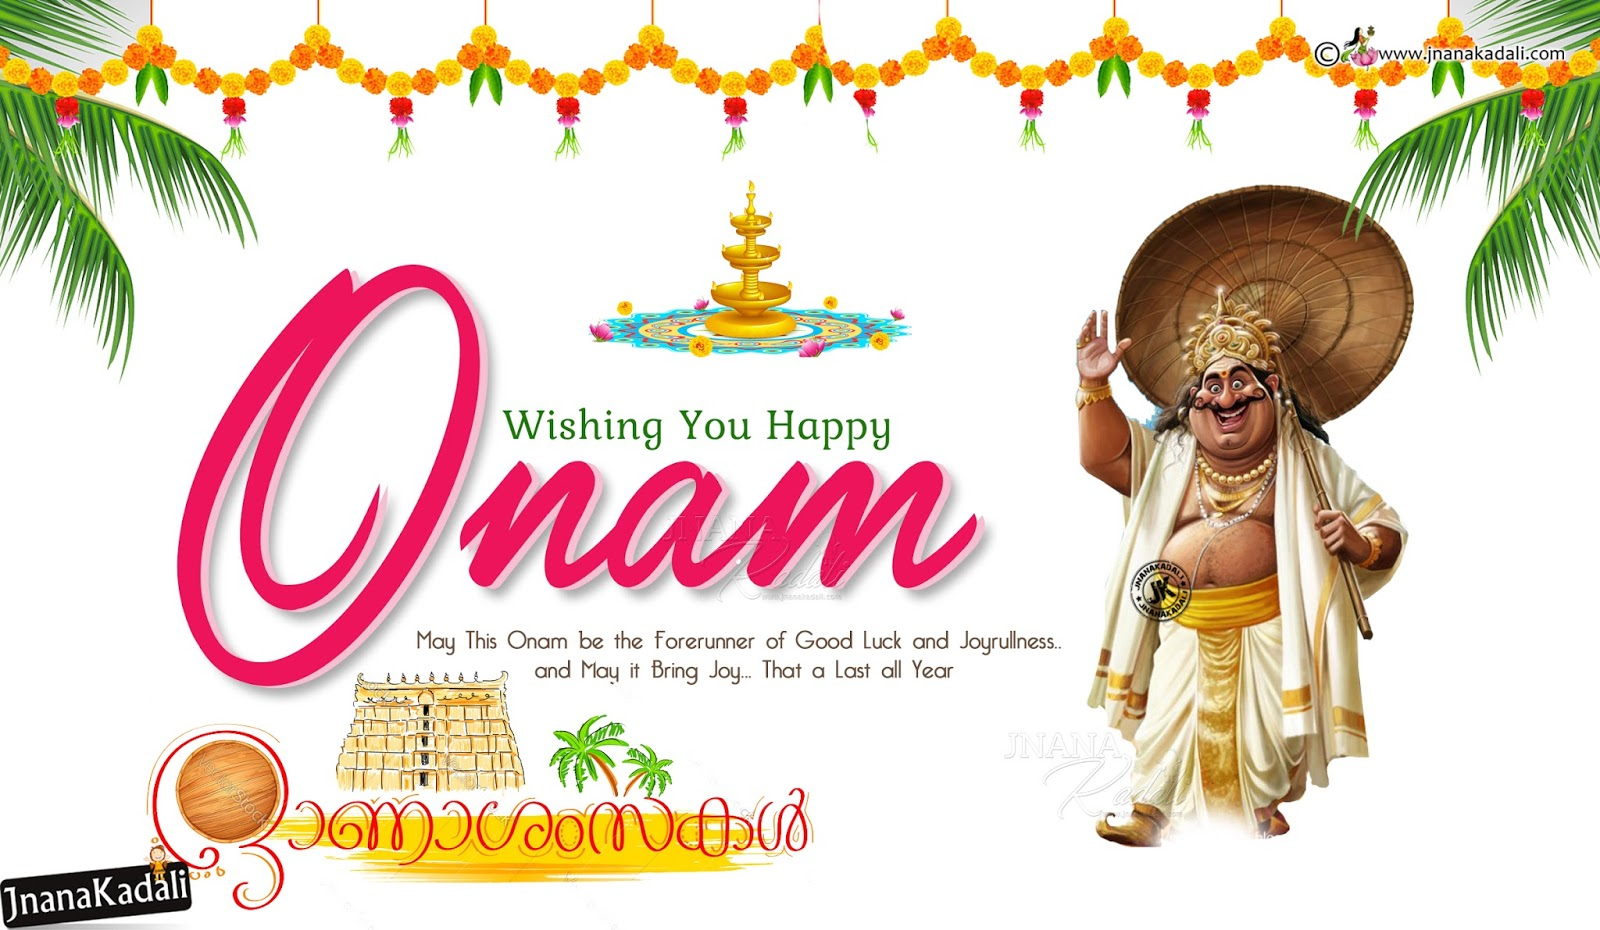 Trending 2017 advanced onam greetings in english onam ashamshugal in happy onam quotes greetings in malayalam best onam quotes hd wallpapers onam messages in m4hsunfo